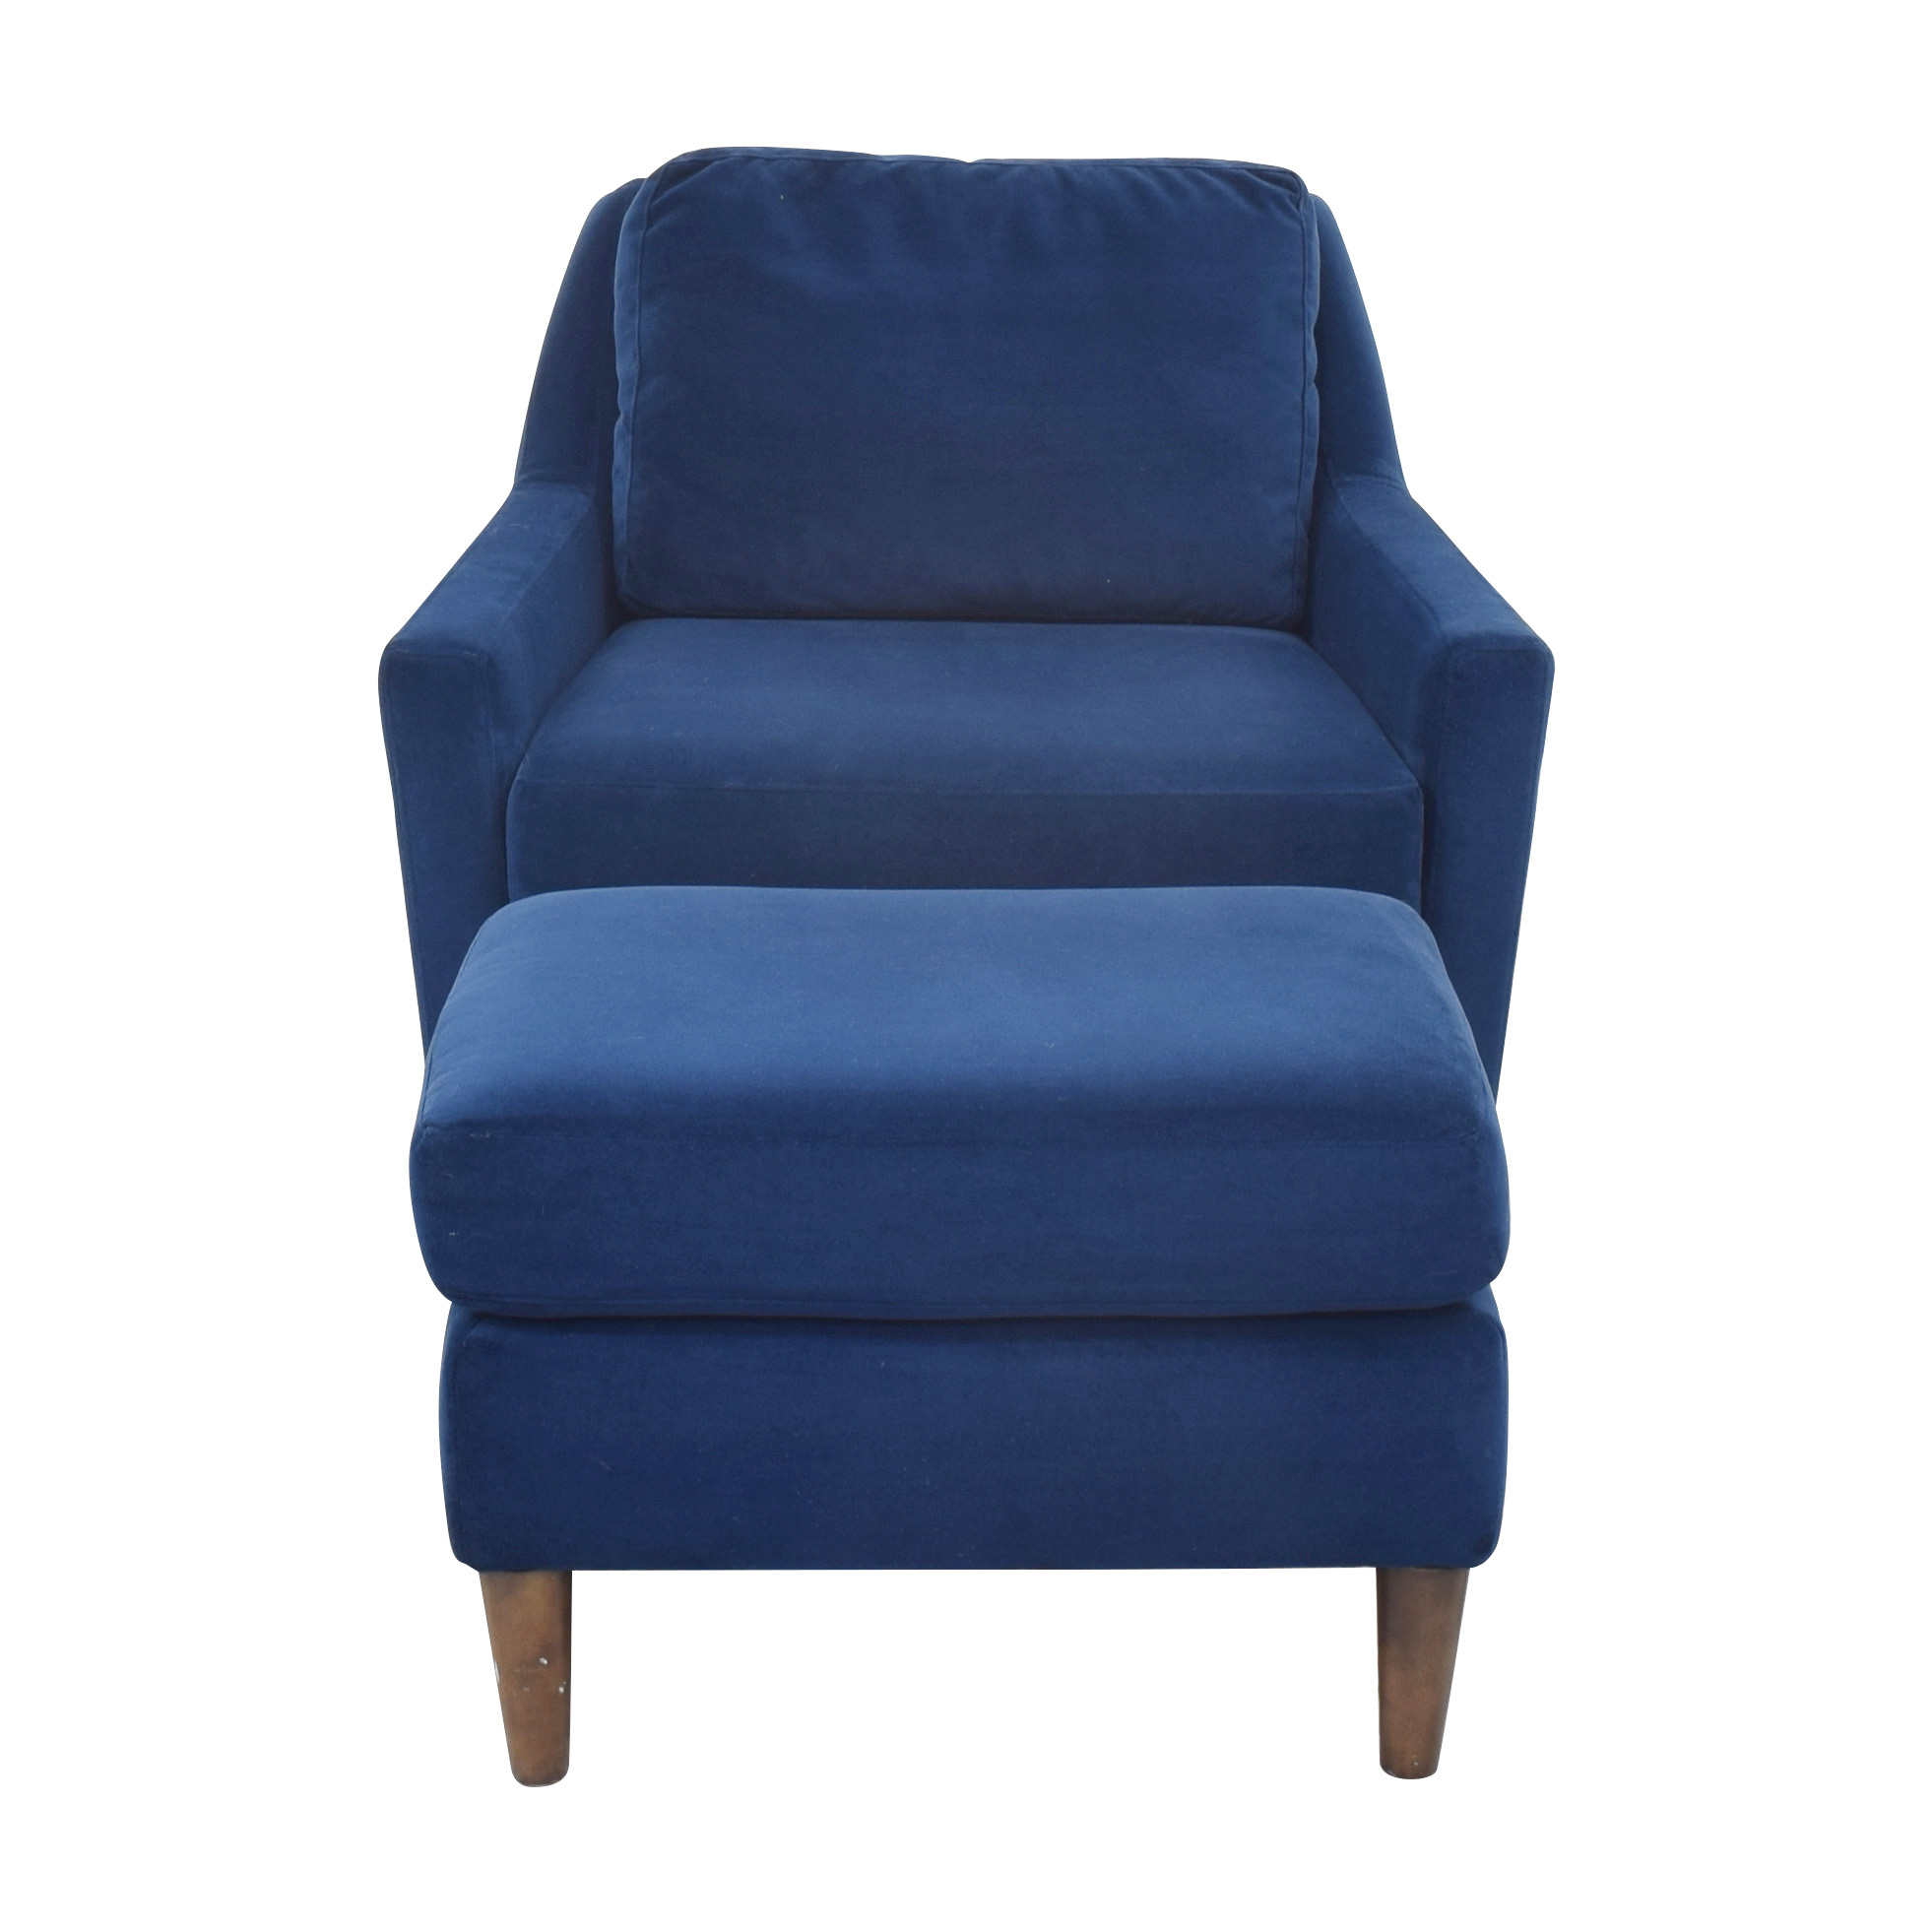 West Elm Everett Chair and Ottoman / Accent Chairs